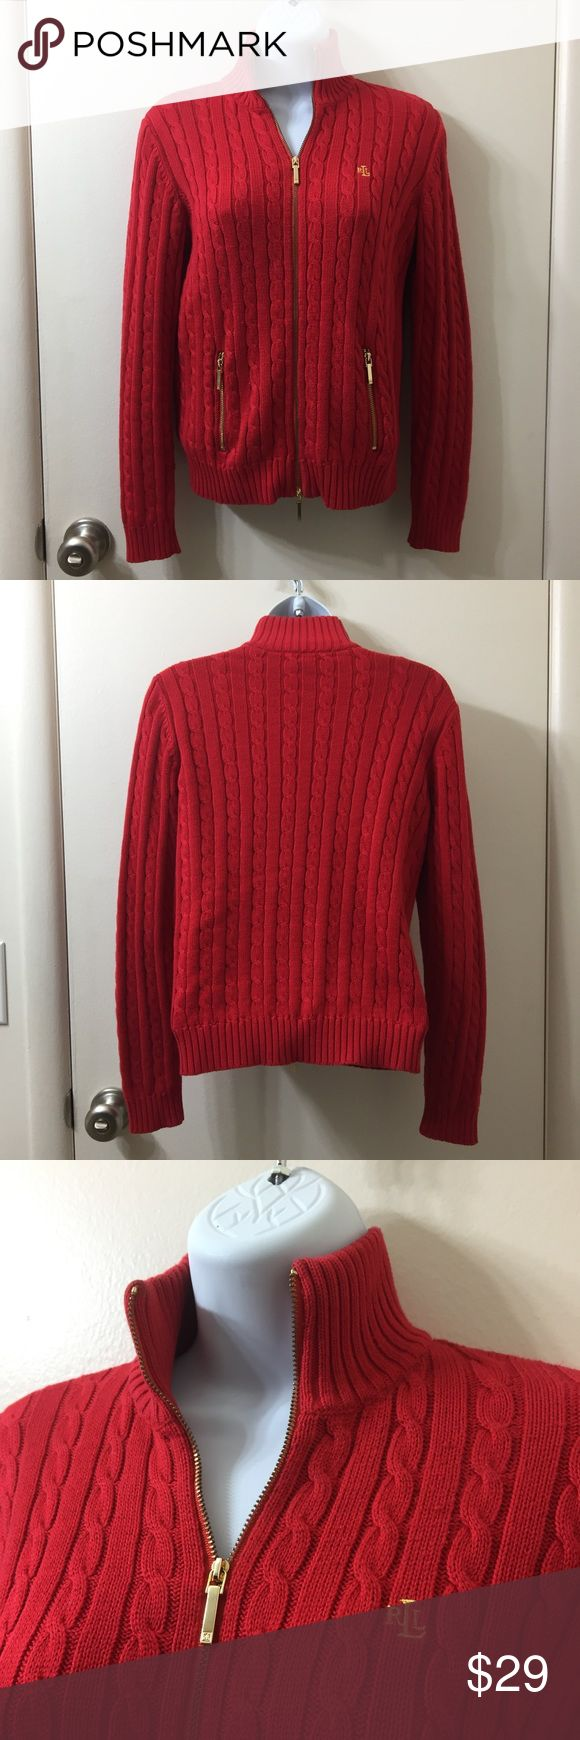 Red Lauren Ralph Lauren Zip Up Cable Knit Sweater Red Ralph Lauren Stand up Collar Zip Up Cable Knit Sweater. Size Petite. Please see photo with tag.  100% Cotton. Has Gold Accent Zipper and Pocket Pulls. Insignia Is in Gold as well. Sweater has 2 pockets that zip shut.   Can be worn on that chilly Spring night. Out on the Boat on a beautiful Summer night. Or that Blustery Winter Day. Should be a staple in everyone's wardrobe? Makes that White T and Jeans Oh so Fabulous. Lauren Ralph Lauren…